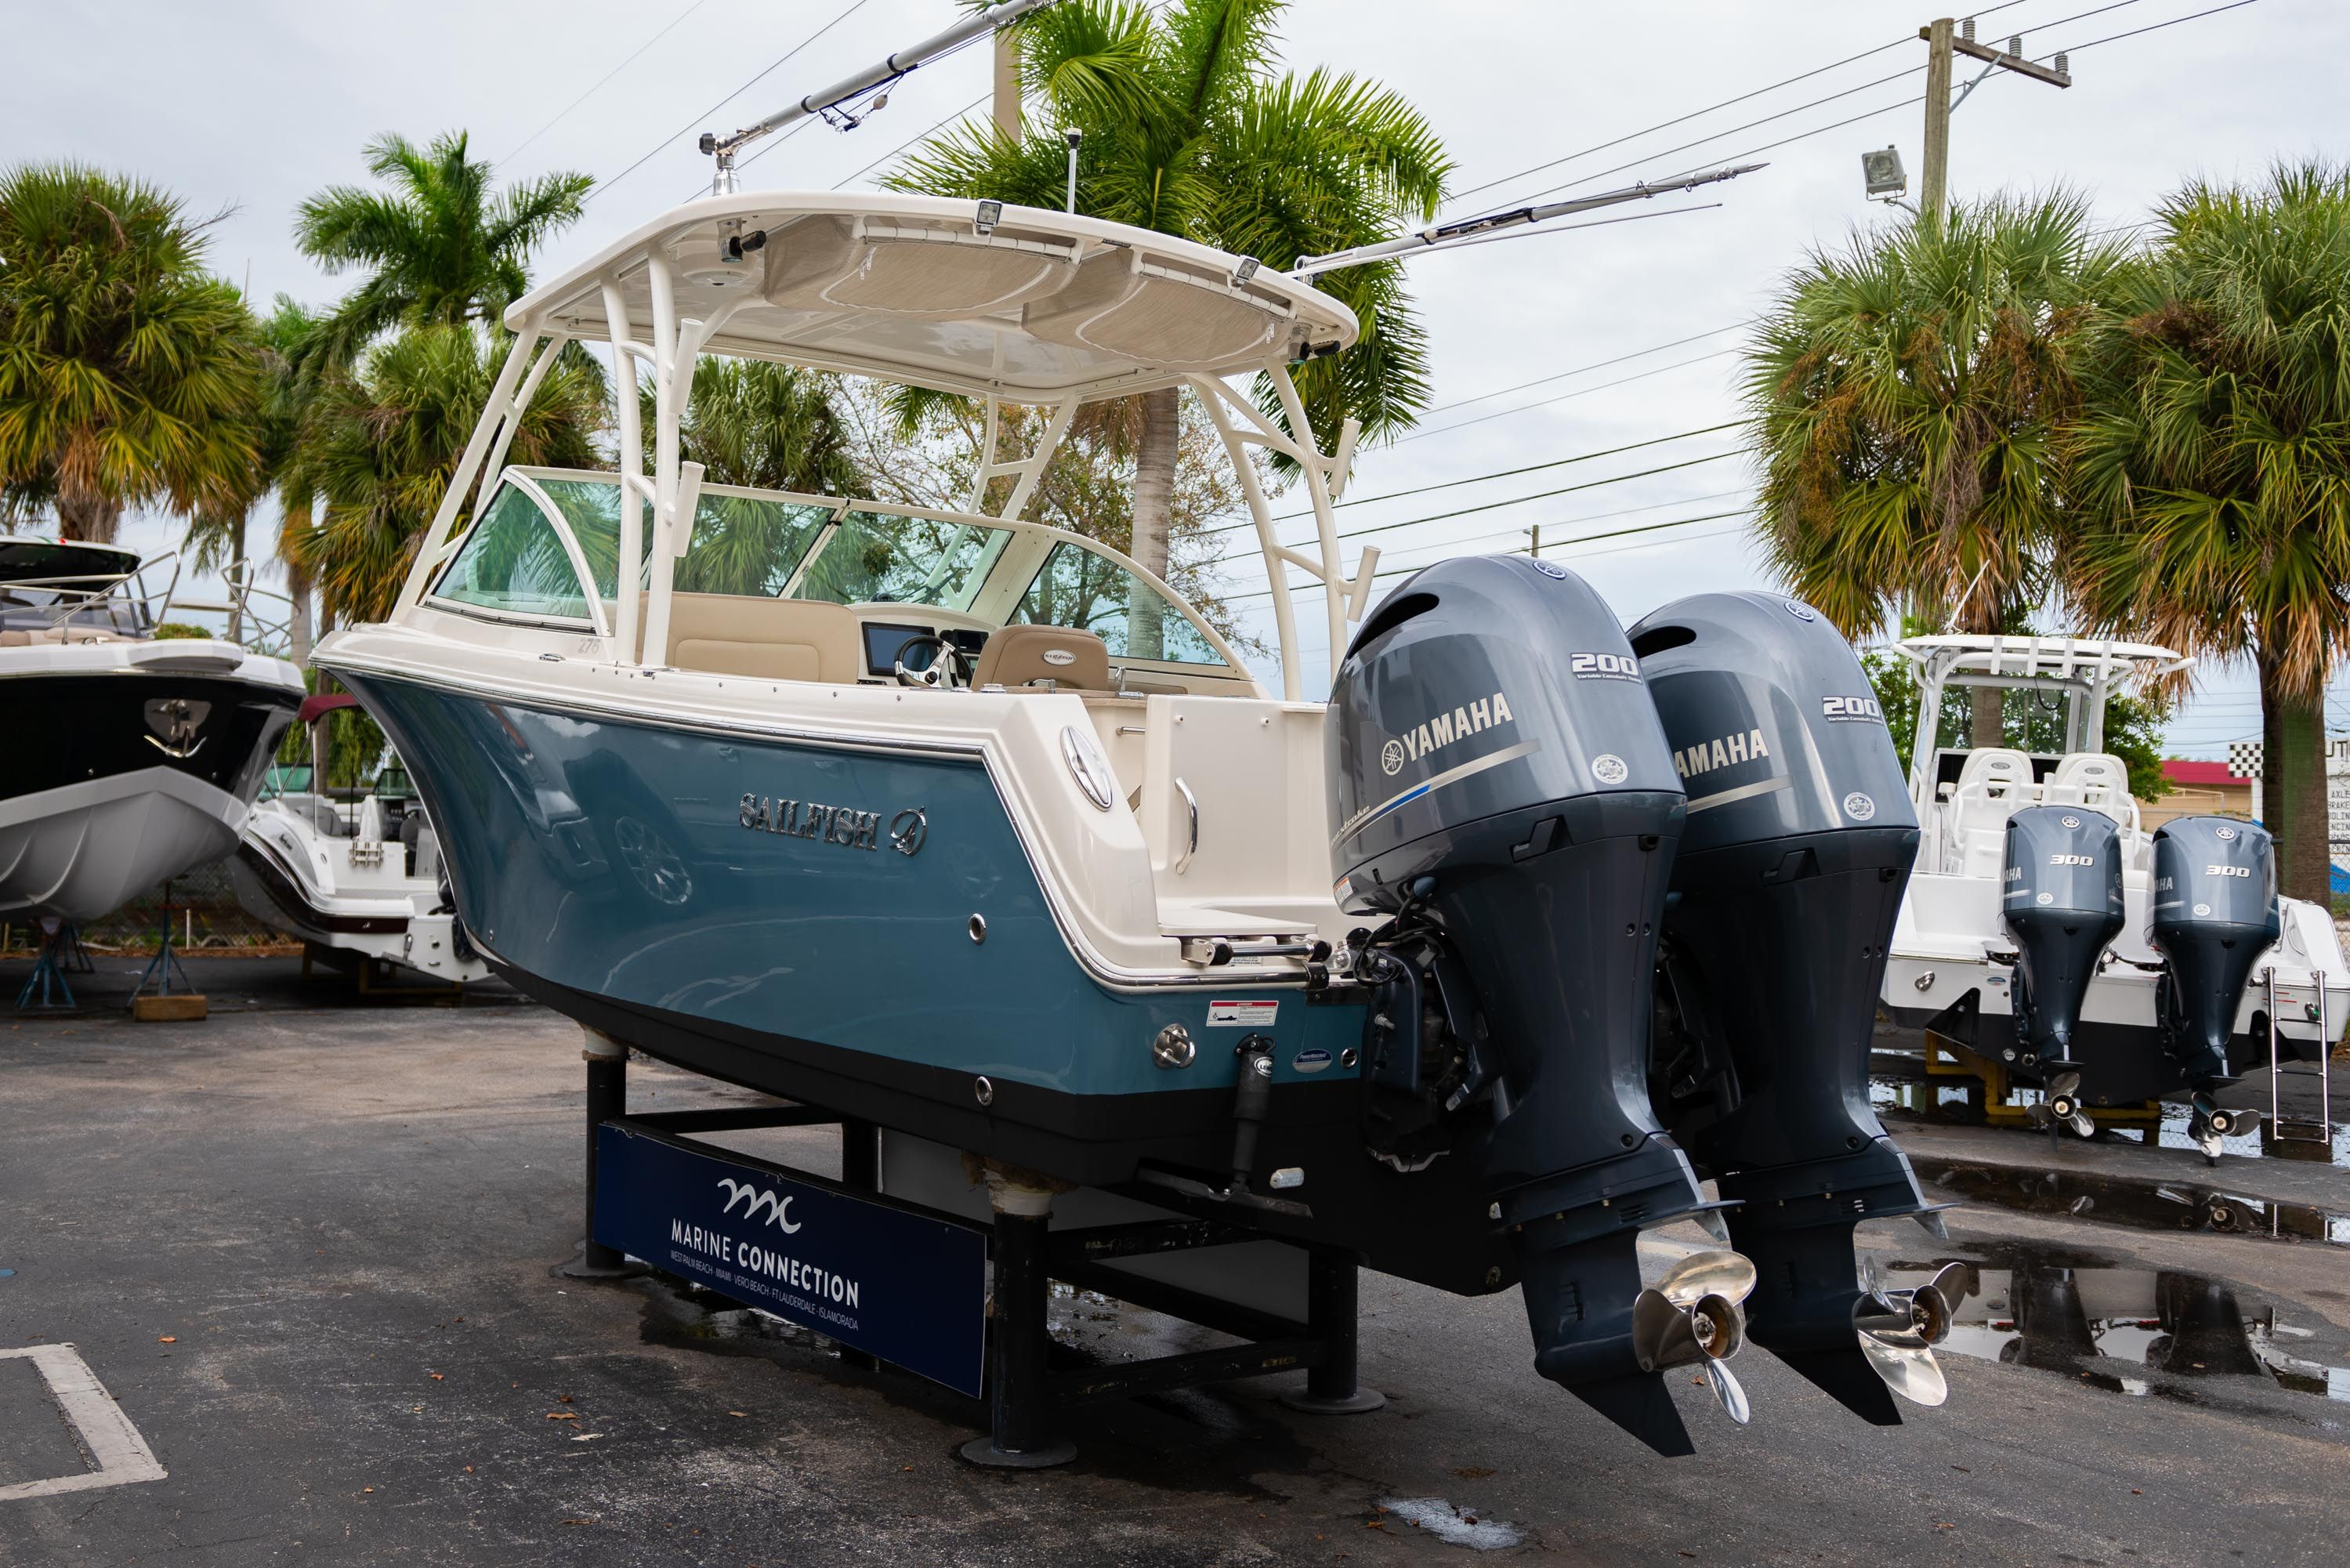 Thumbnail 5 for Used 2017 Sailfish 275 Dual Console boat for sale in West Palm Beach, FL